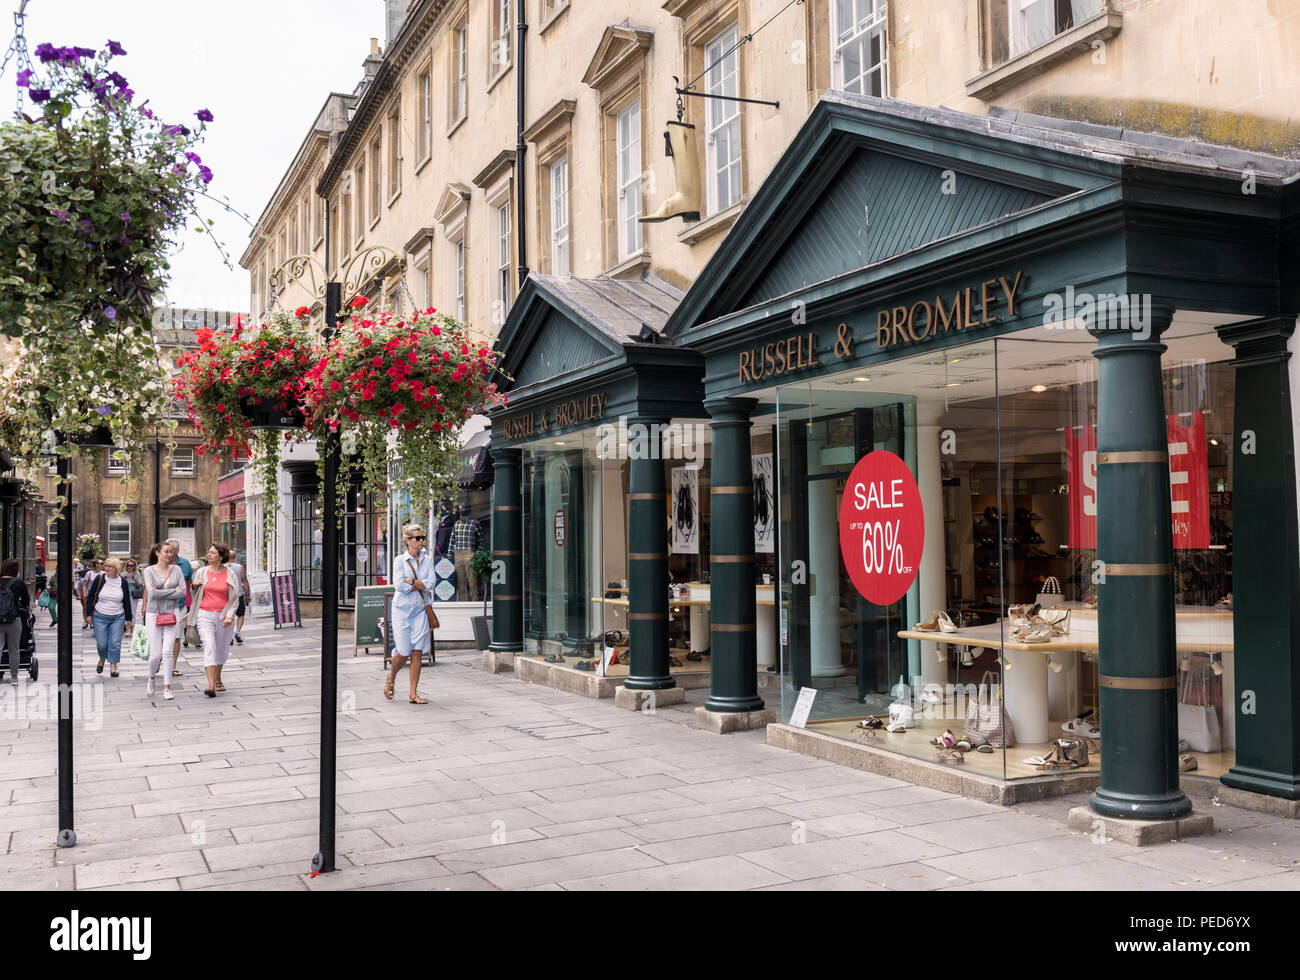 Russell & Bromley store in Old Bond Street, Bath, England - Stock Image